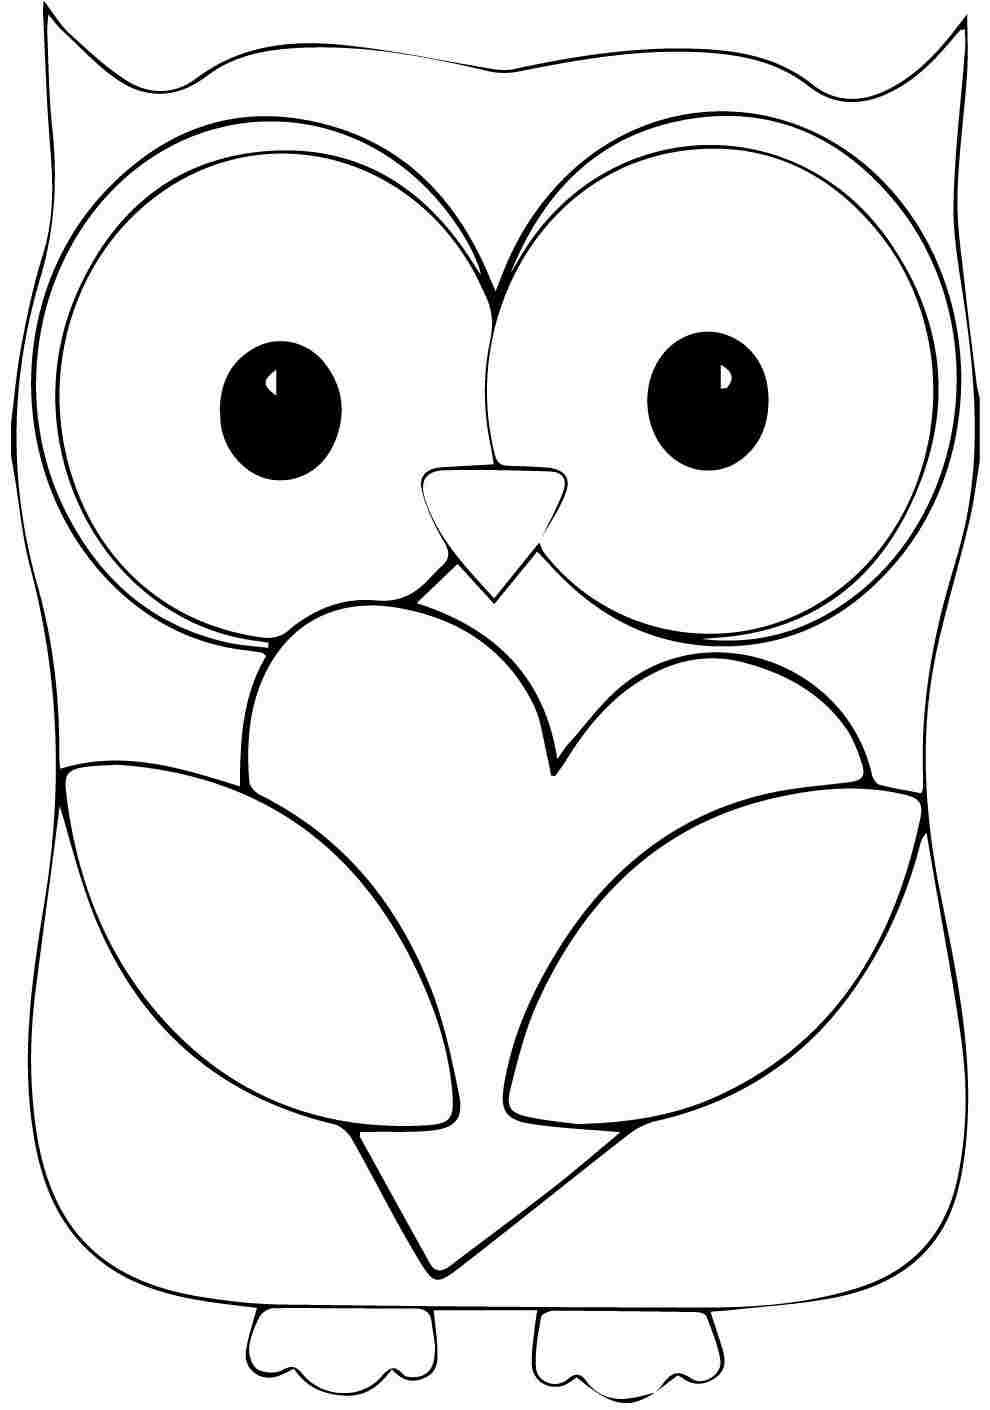 Print Full Size Image Printable Animal Owl Coloring Sheets For